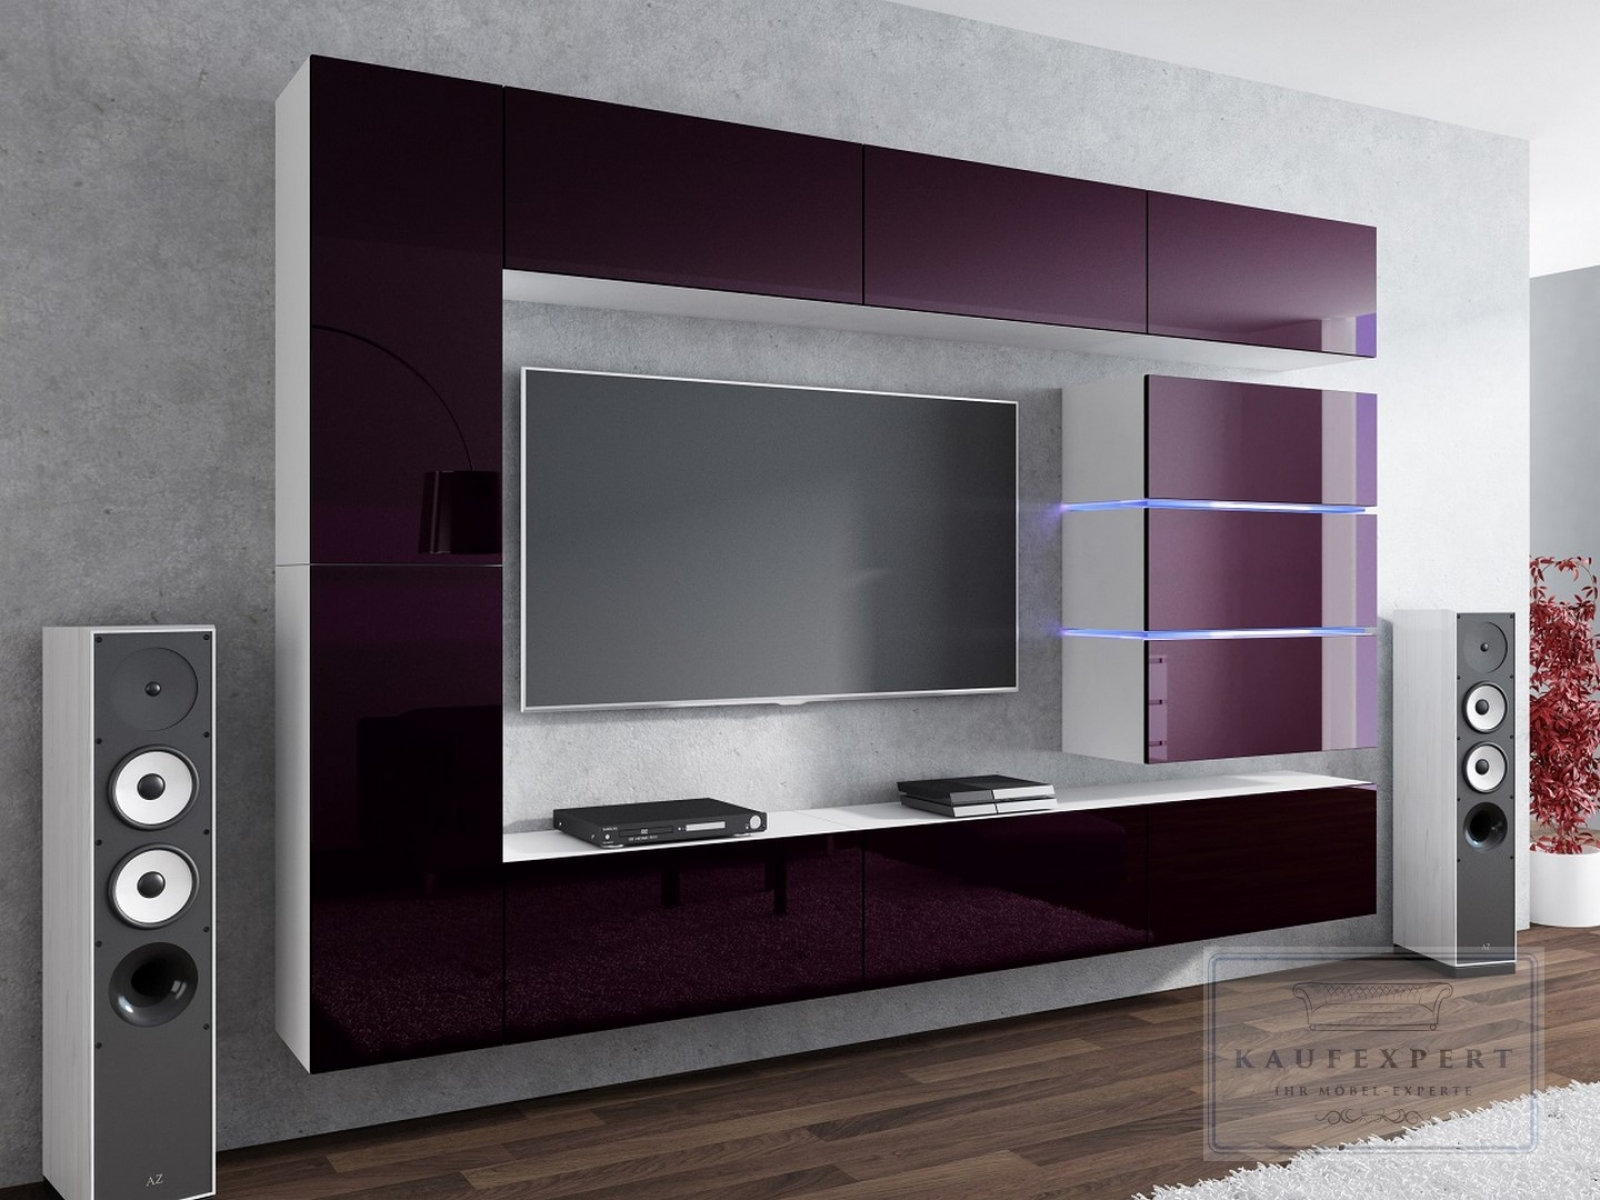 kaufexpert wohnwand shine aubergine hochglanz wei 284 cm mediawand medienwand design modern. Black Bedroom Furniture Sets. Home Design Ideas